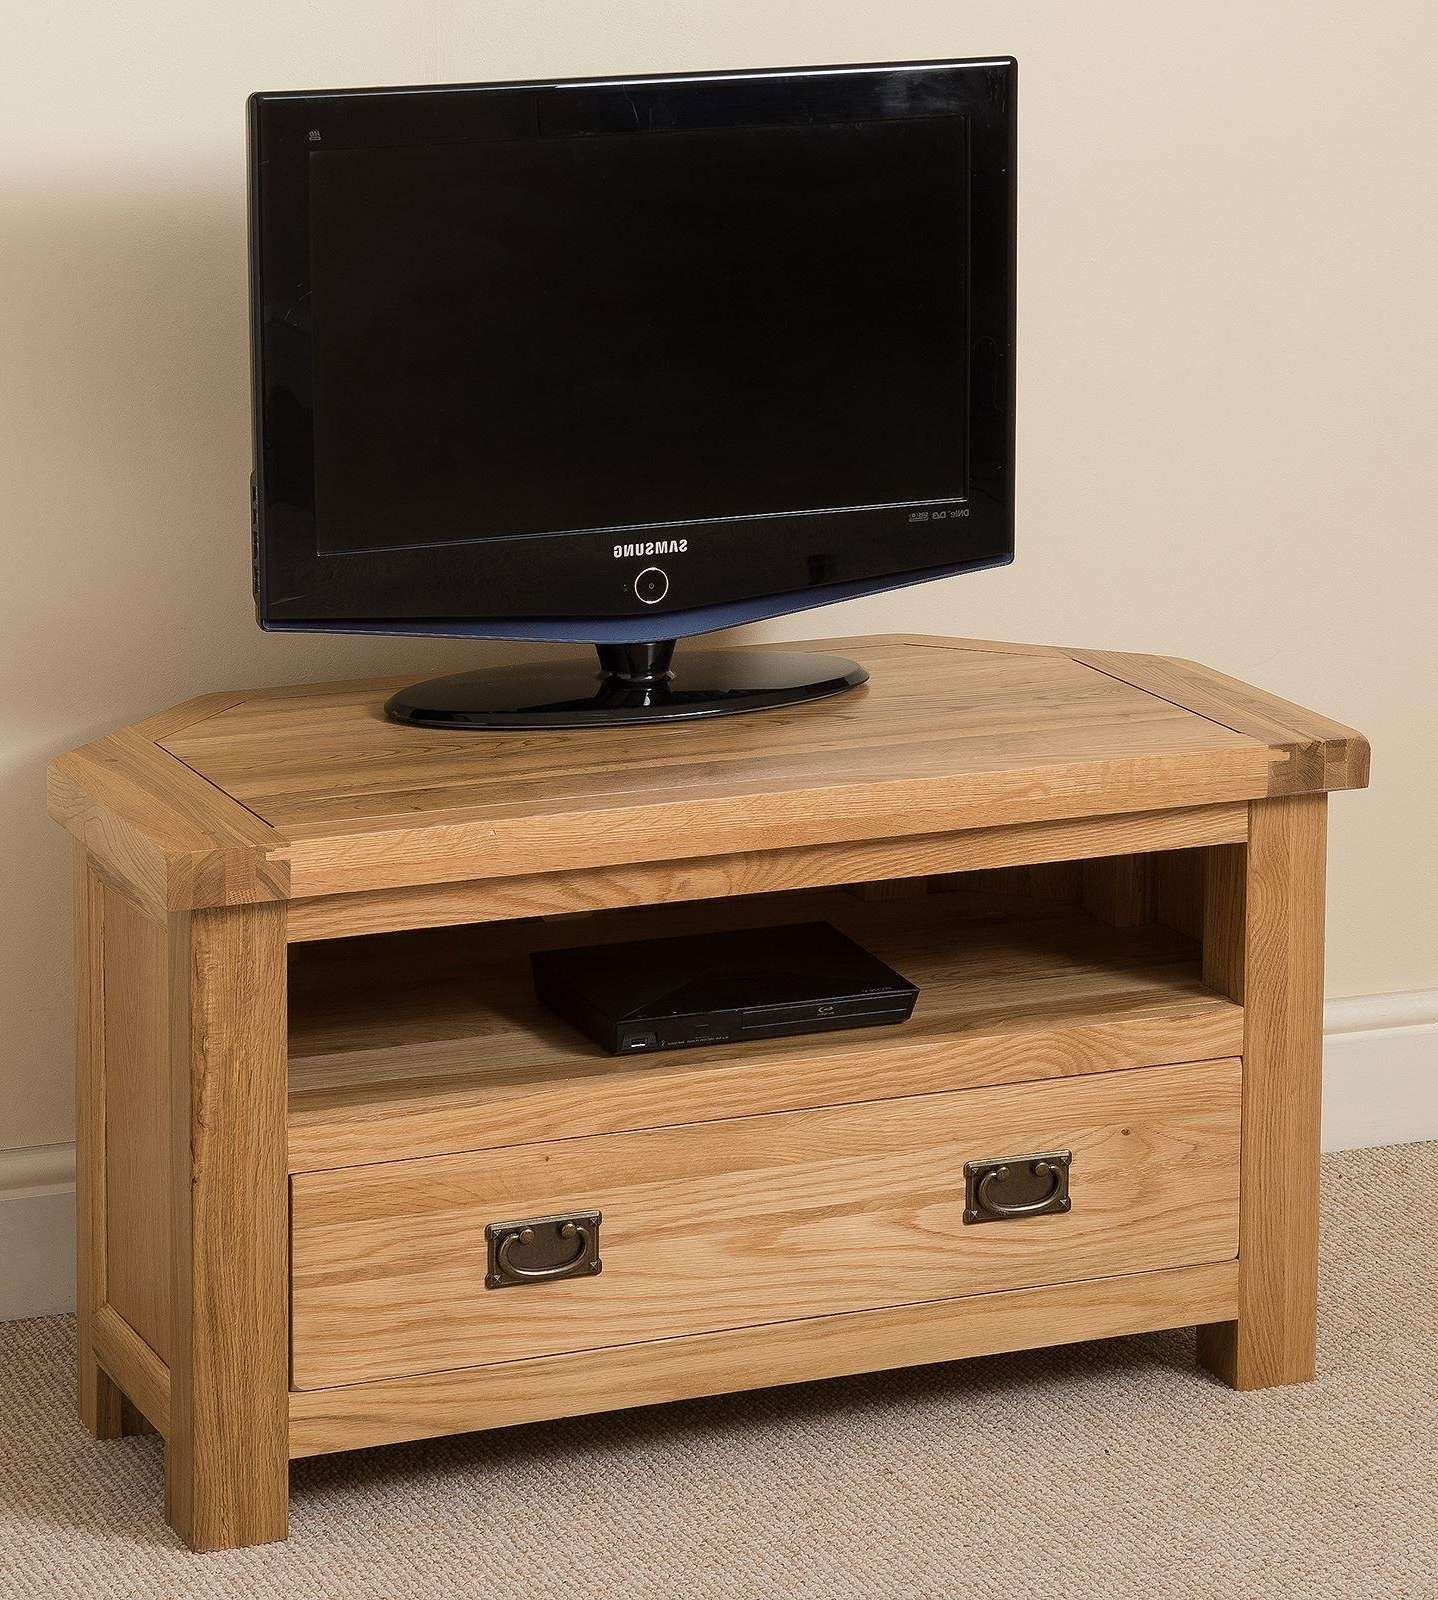 Kuba Solid Oak Corner Tv Cabinet u2022 Corner Cabinets Intended For Light Oak Corner Tv Stands & View Photos of Light Oak Corner Tv Stands (Showing 14 of 20 Photos)